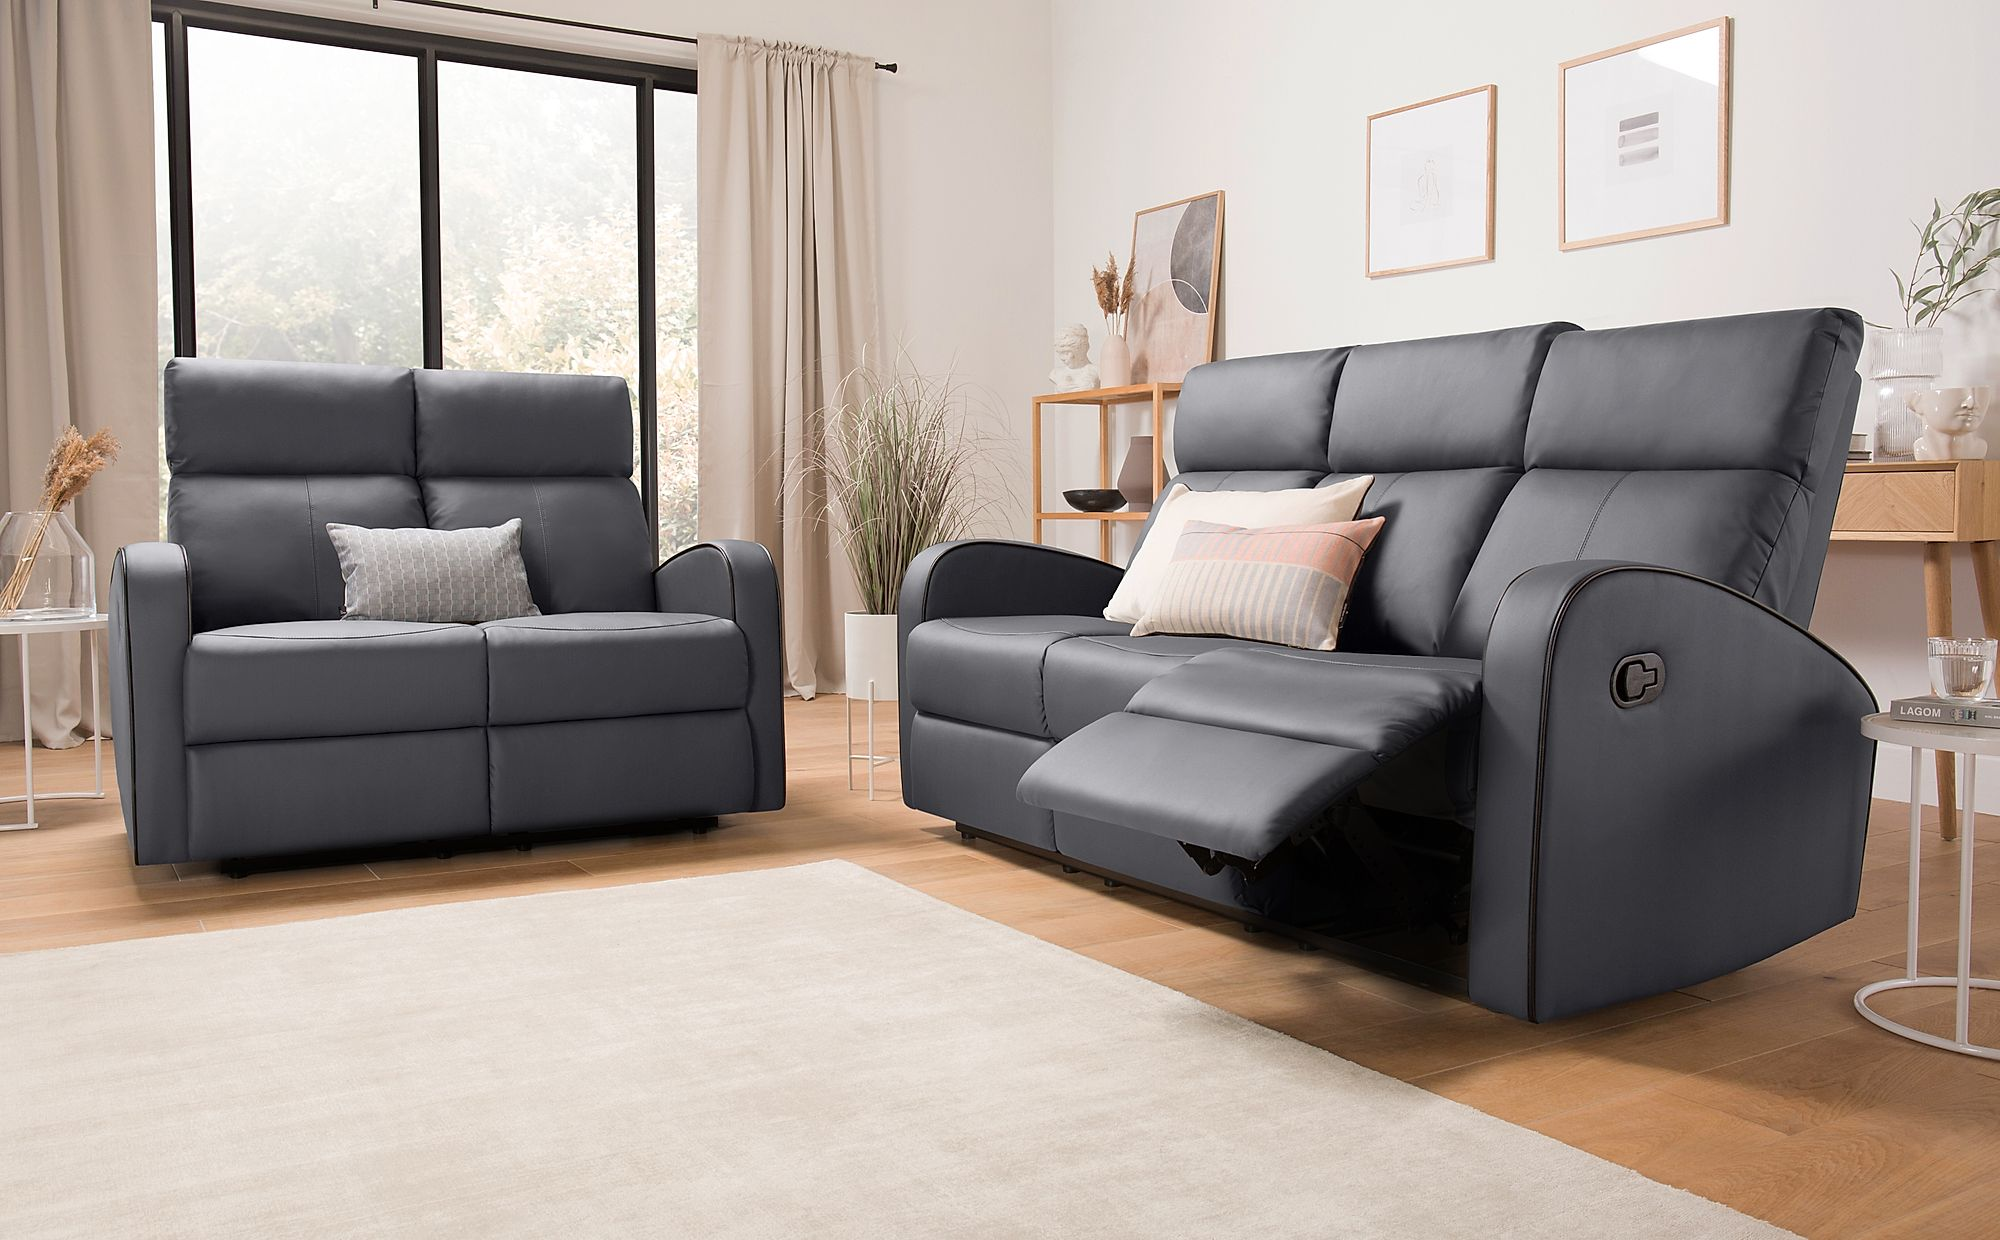 Ashby Grey Leather Recliner Sofa - 3+2 Seater